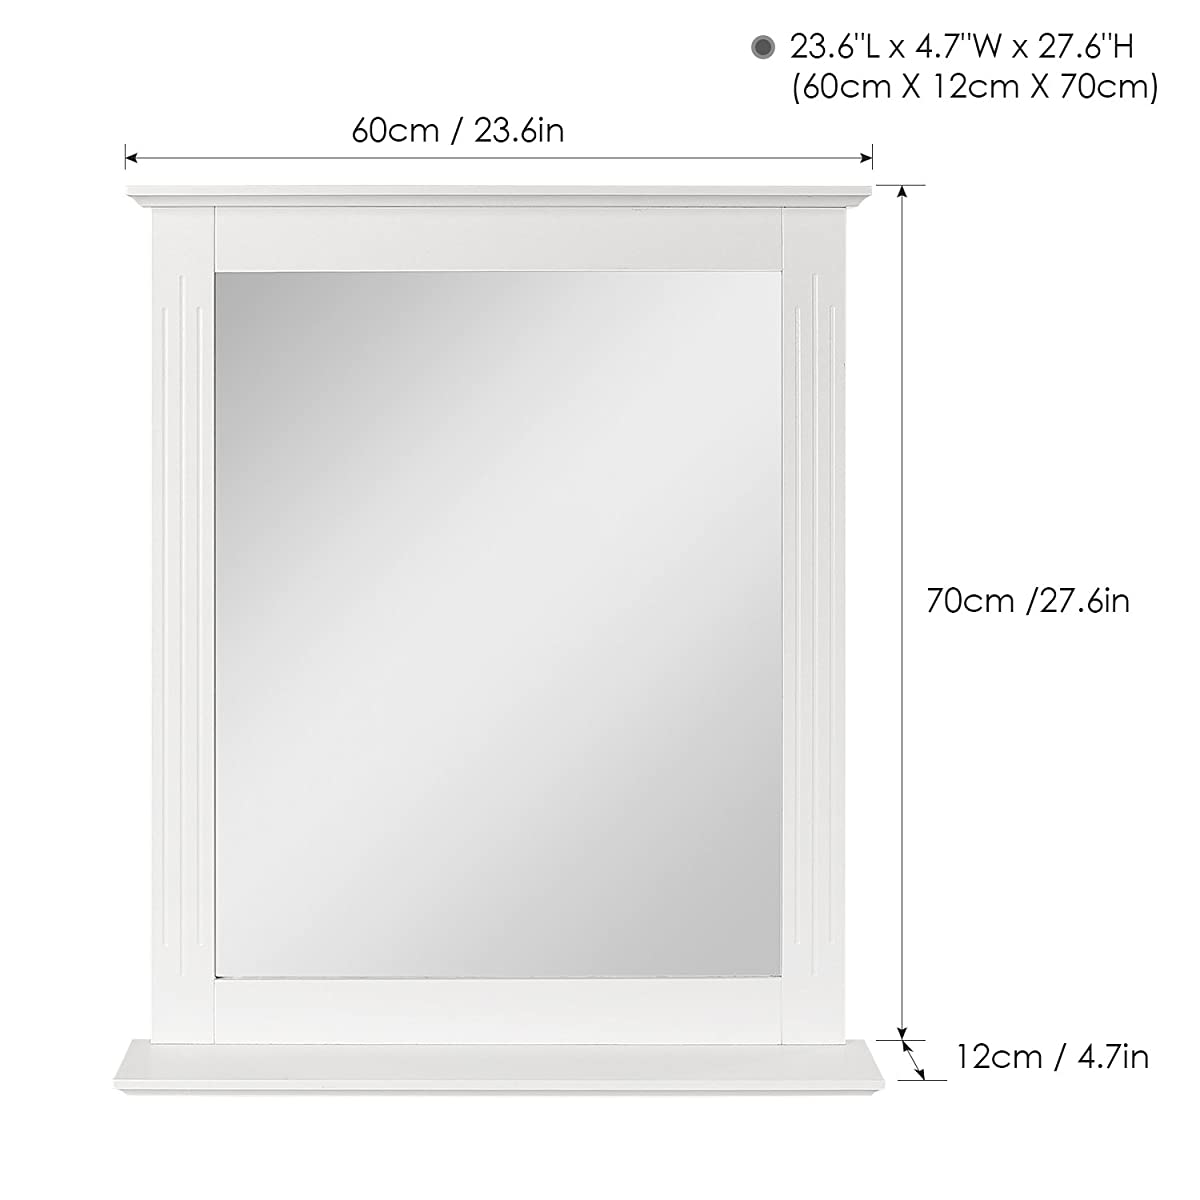 homfa bathroom wall mirror vanity mirror makeup mirror framed mirror with shelf for home multipurpose white - Mirror Framed Mirror